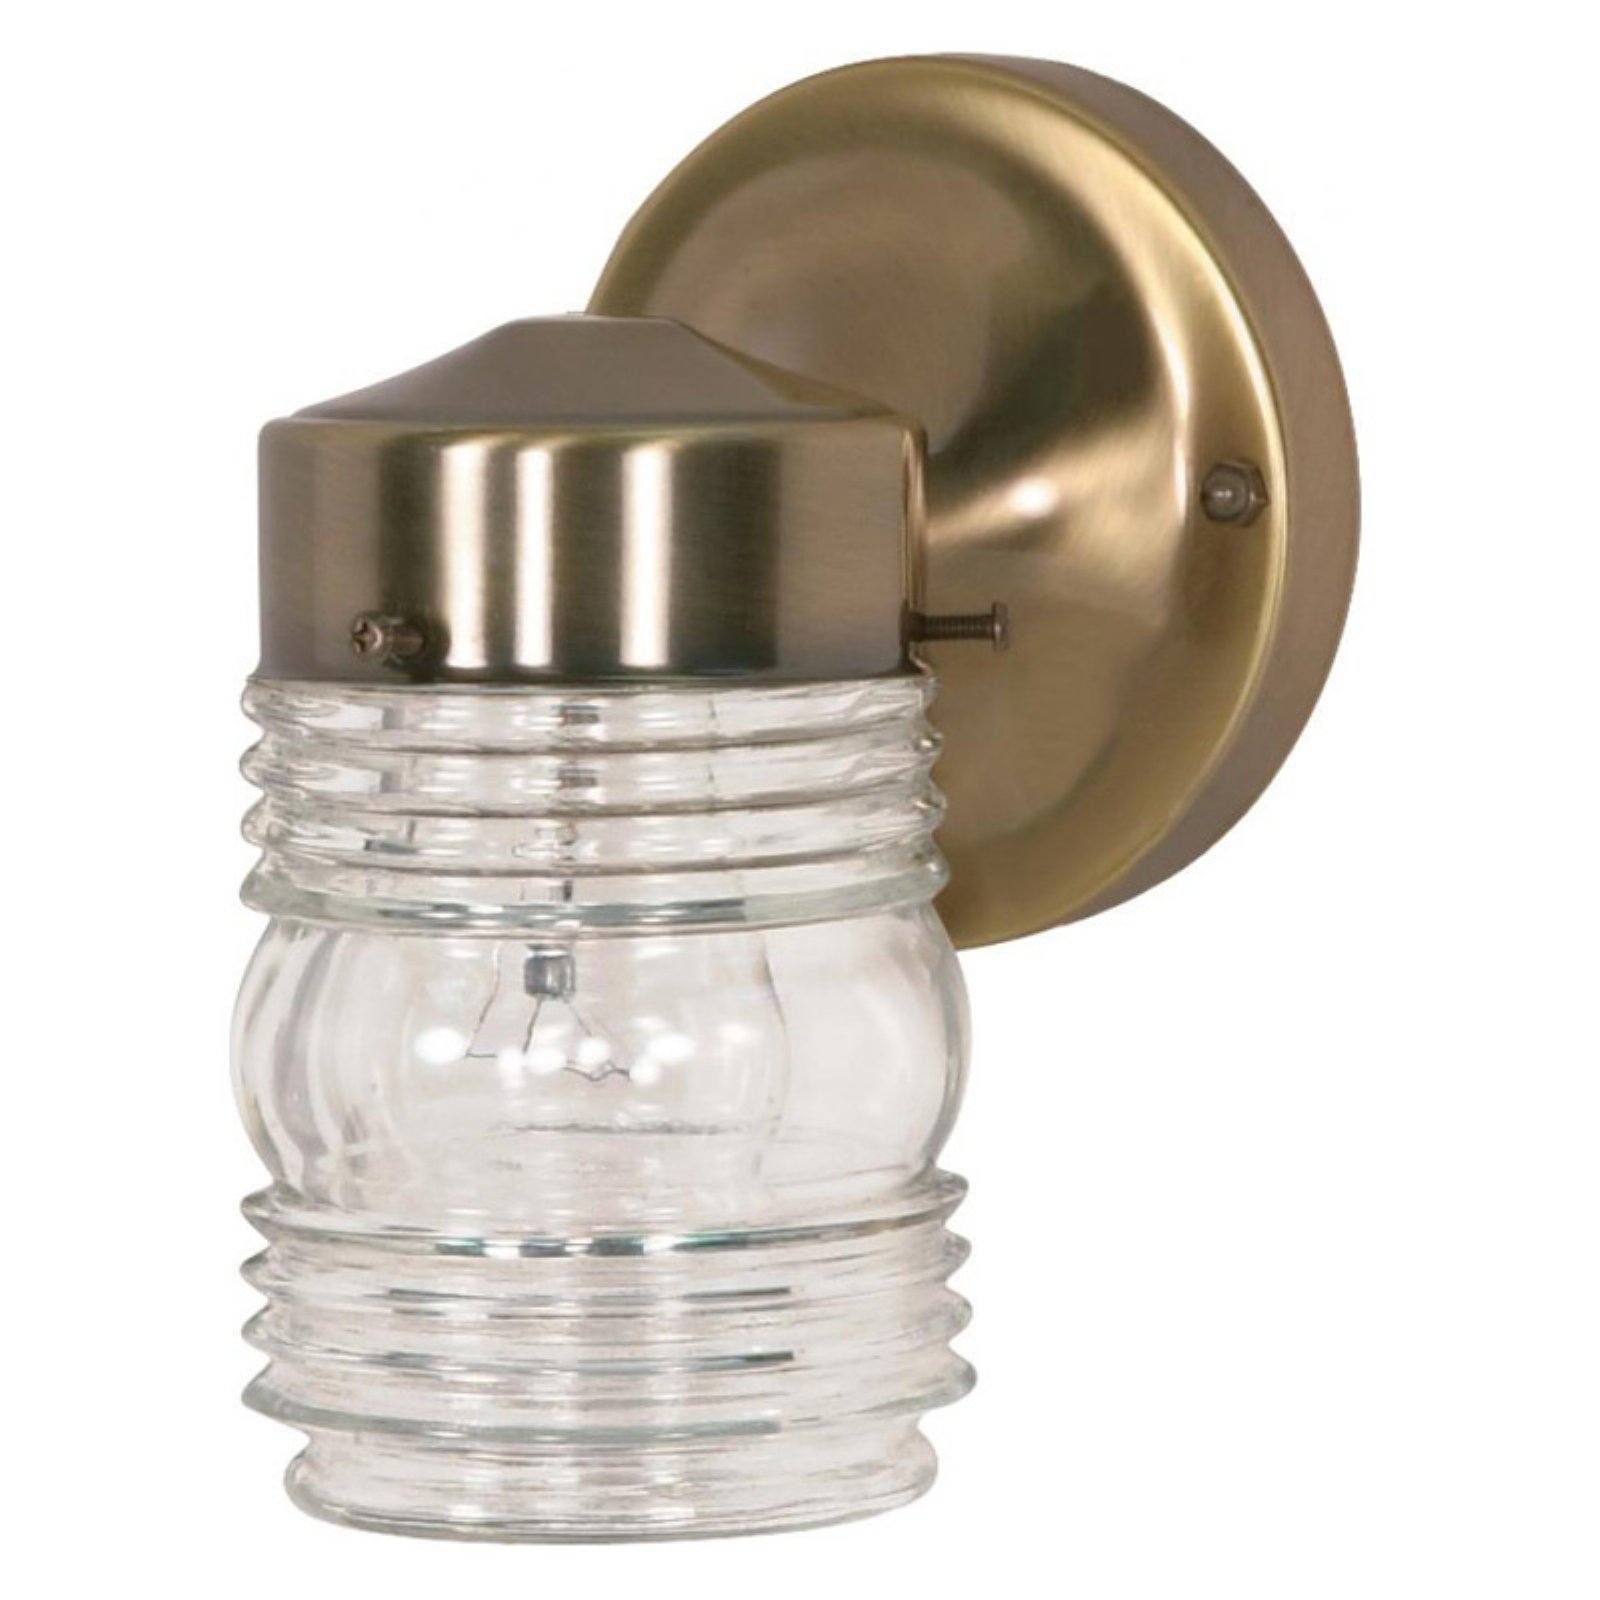 "Nuvo Lighting 77 119 Single Light 6"" Mason Jar Porch Light with Clear Glass Shad by Supplier Generic"